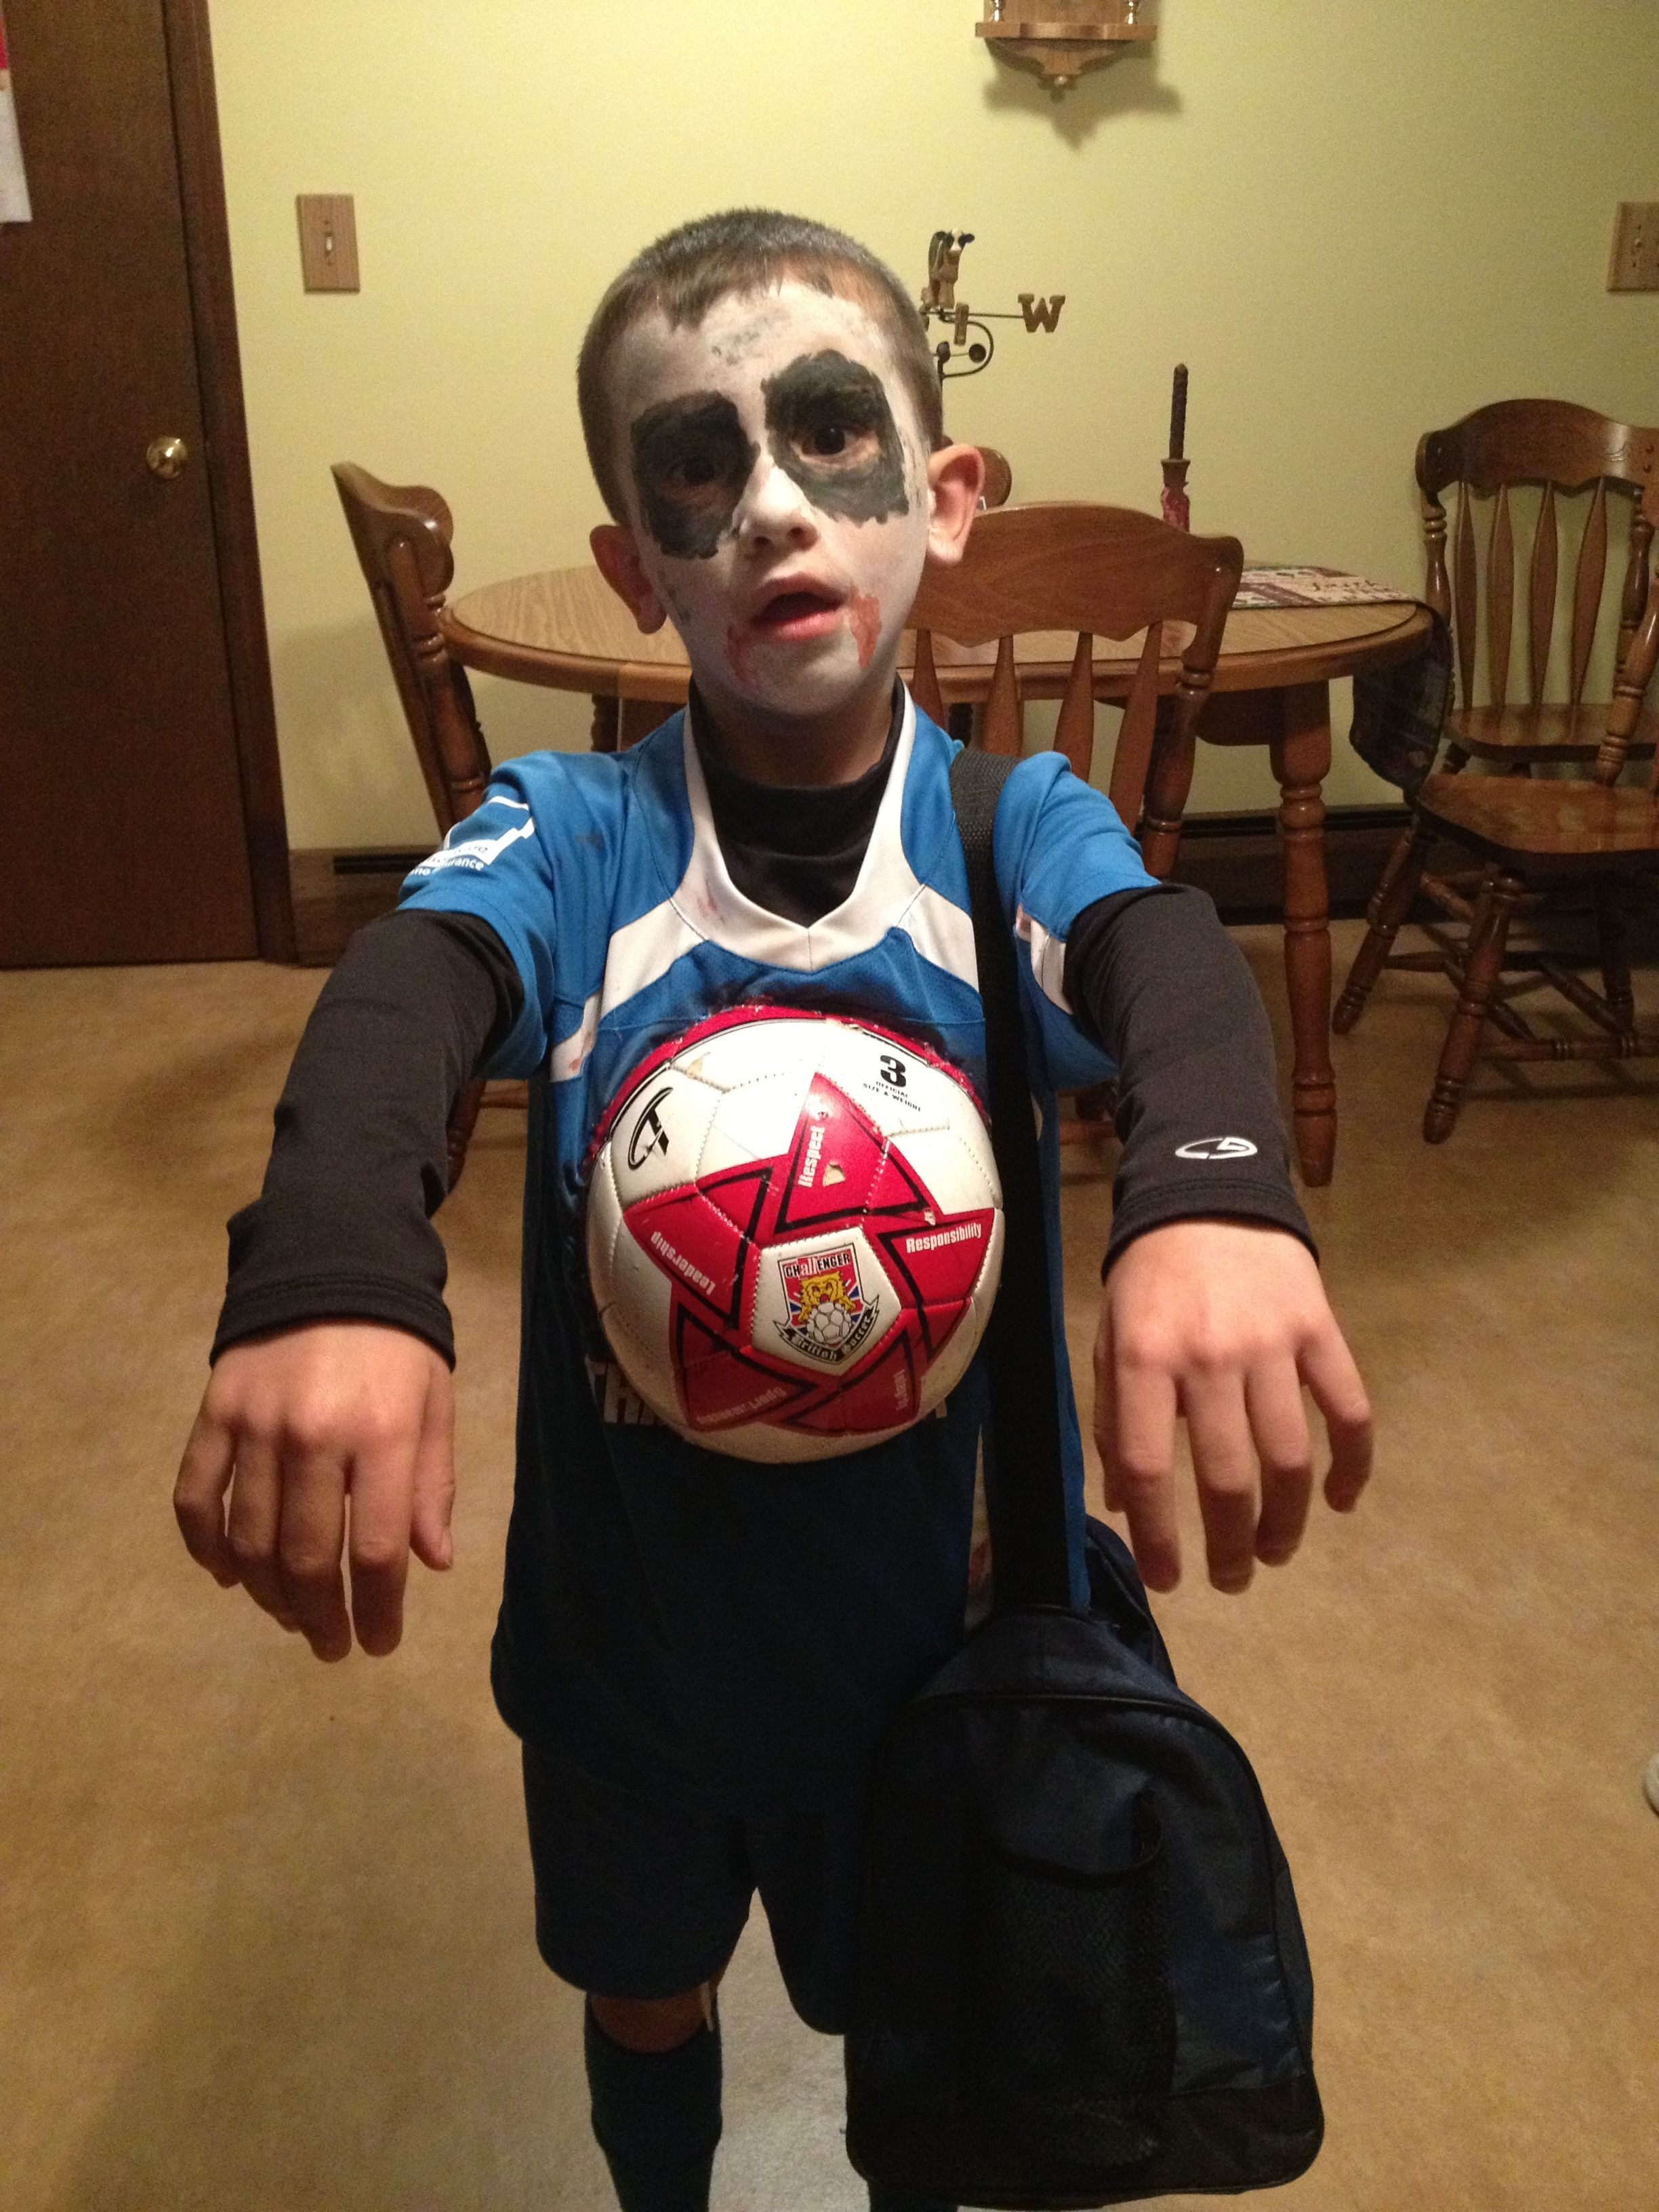 Soccer Player Zombie Halloween Costume Zombie Halloween Costumes Halloween Costumes Zombie Halloween